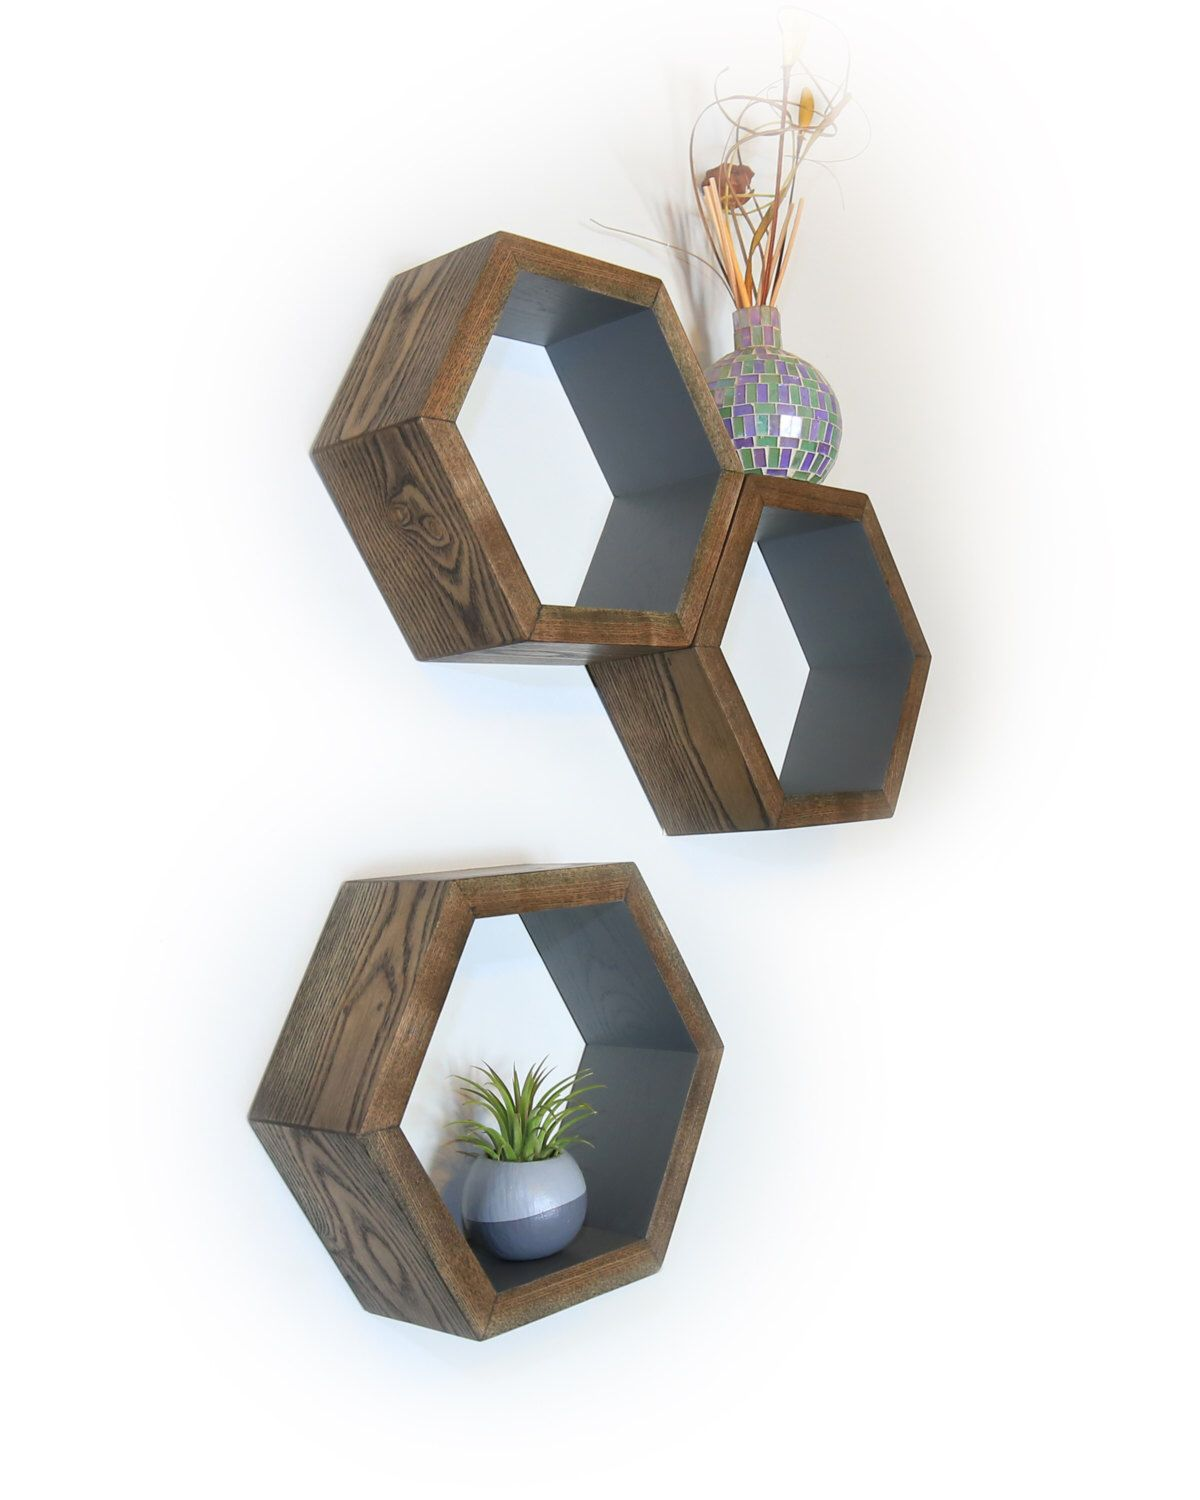 Wood shelves wall shelving geometric hexagon shelves wood shelves wall shelving geometric hexagon shelves honeycomb shelves modern eco friendly amipublicfo Gallery